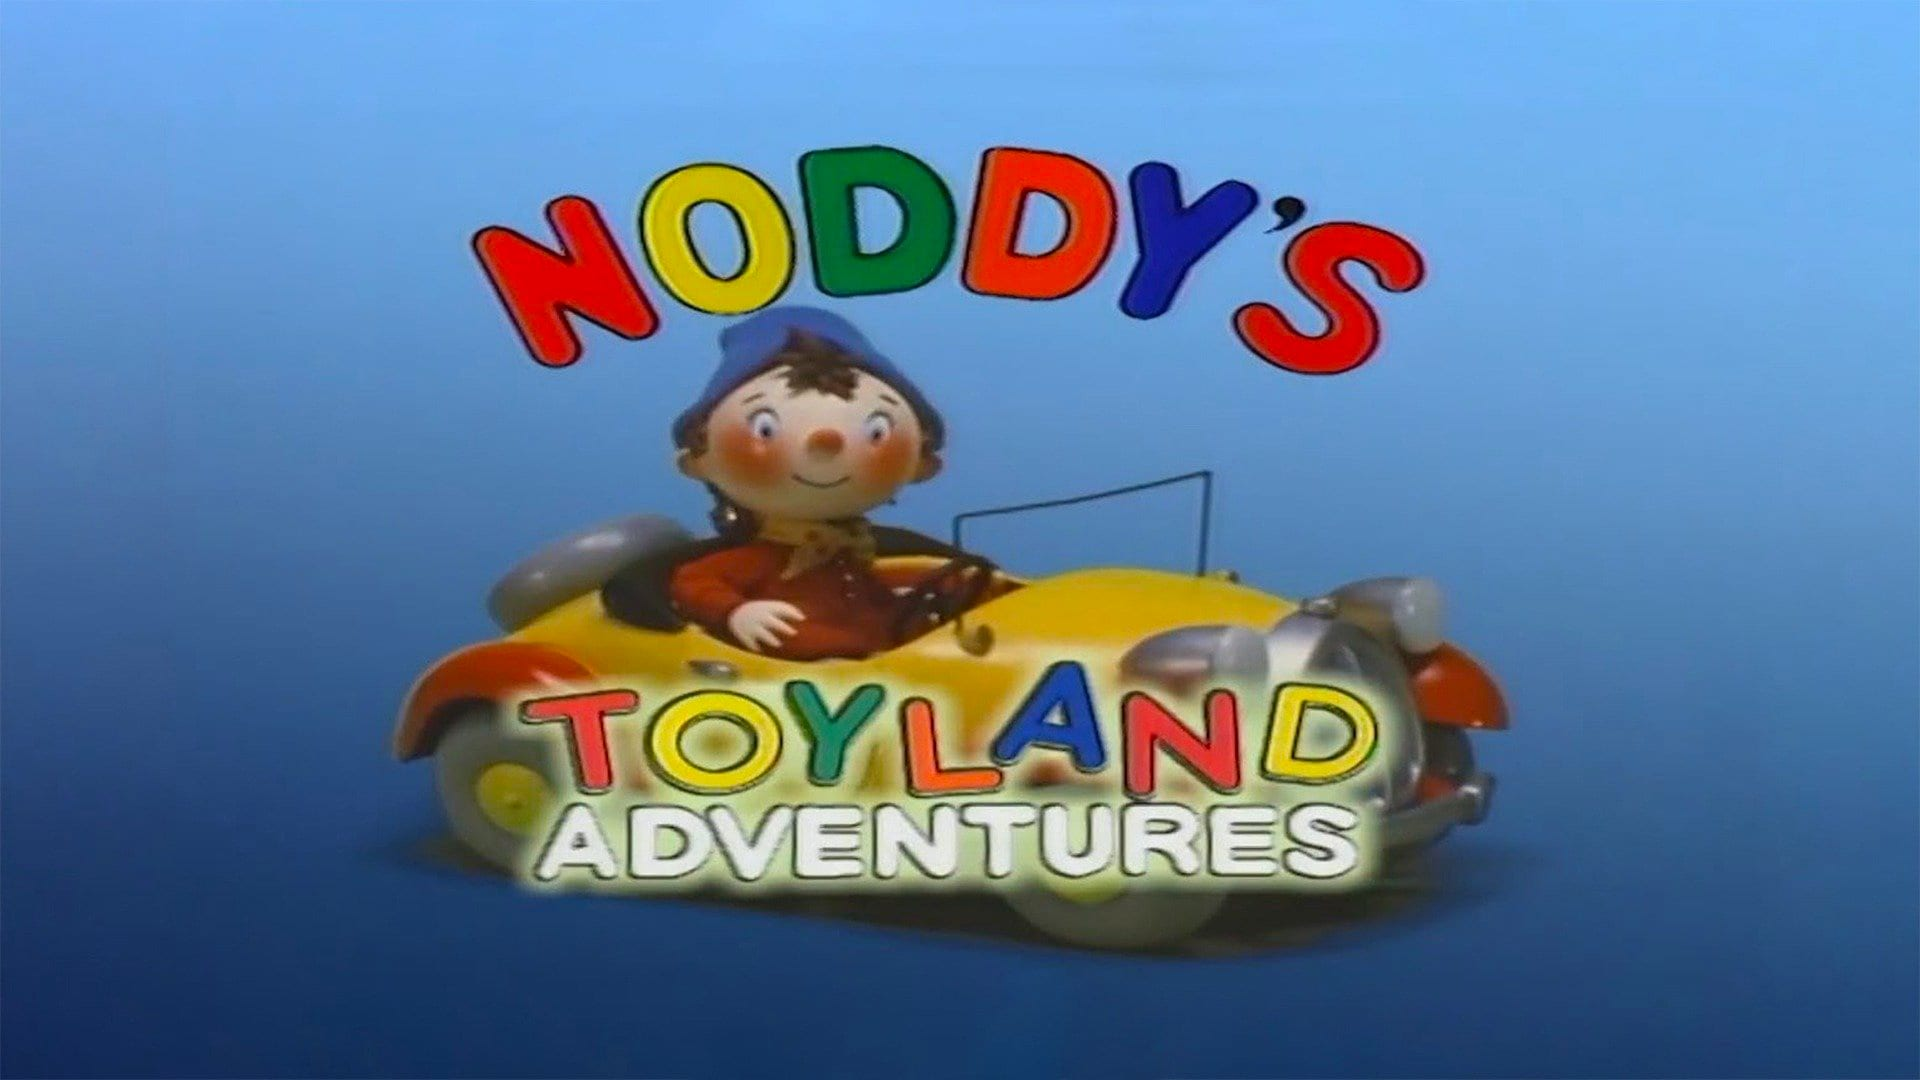 Noddy and the Kite